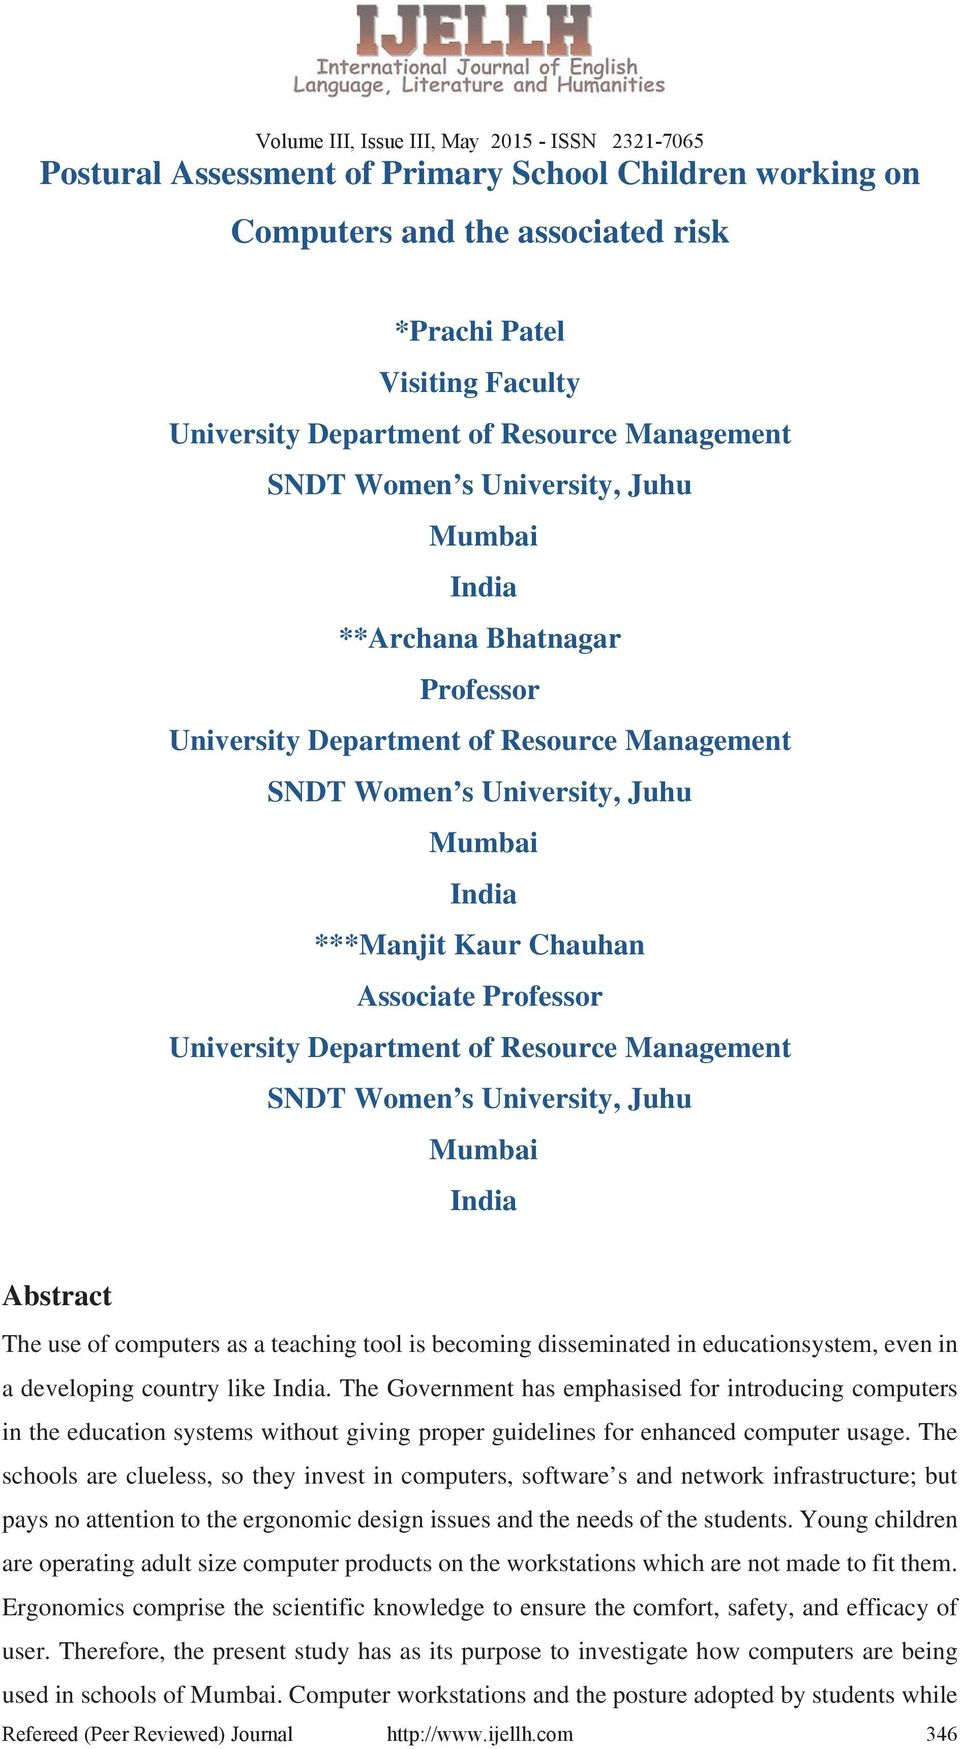 Resource Management SNDT Women s University, Juhu Mumbai India Abstract The use of computers as a teaching tool is becoming disseminated in educationsystem, even in a developing country like India.